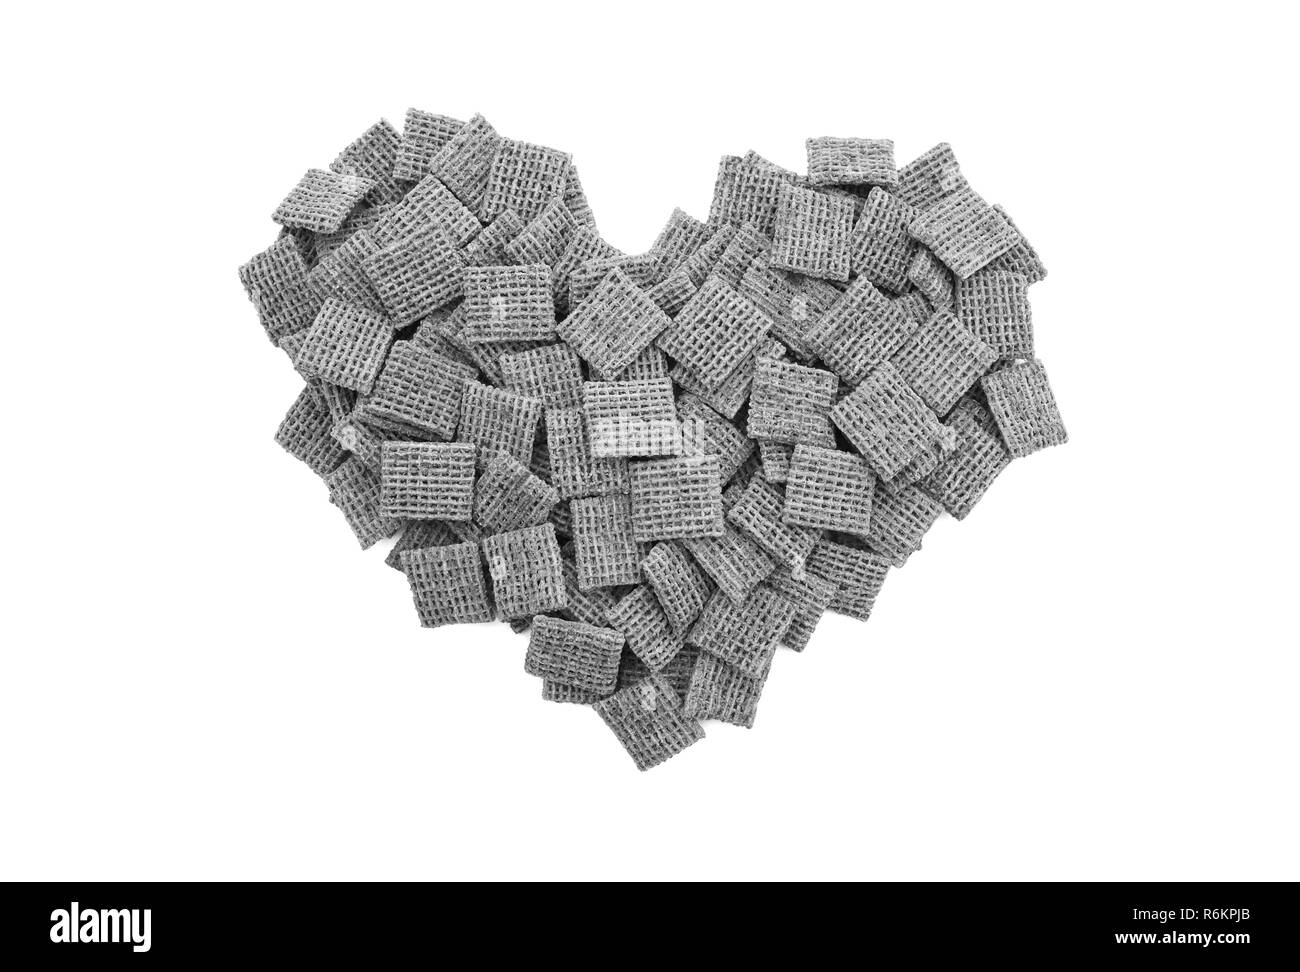 Malted wheat biscuits breakfast cereal heart - Stock Image